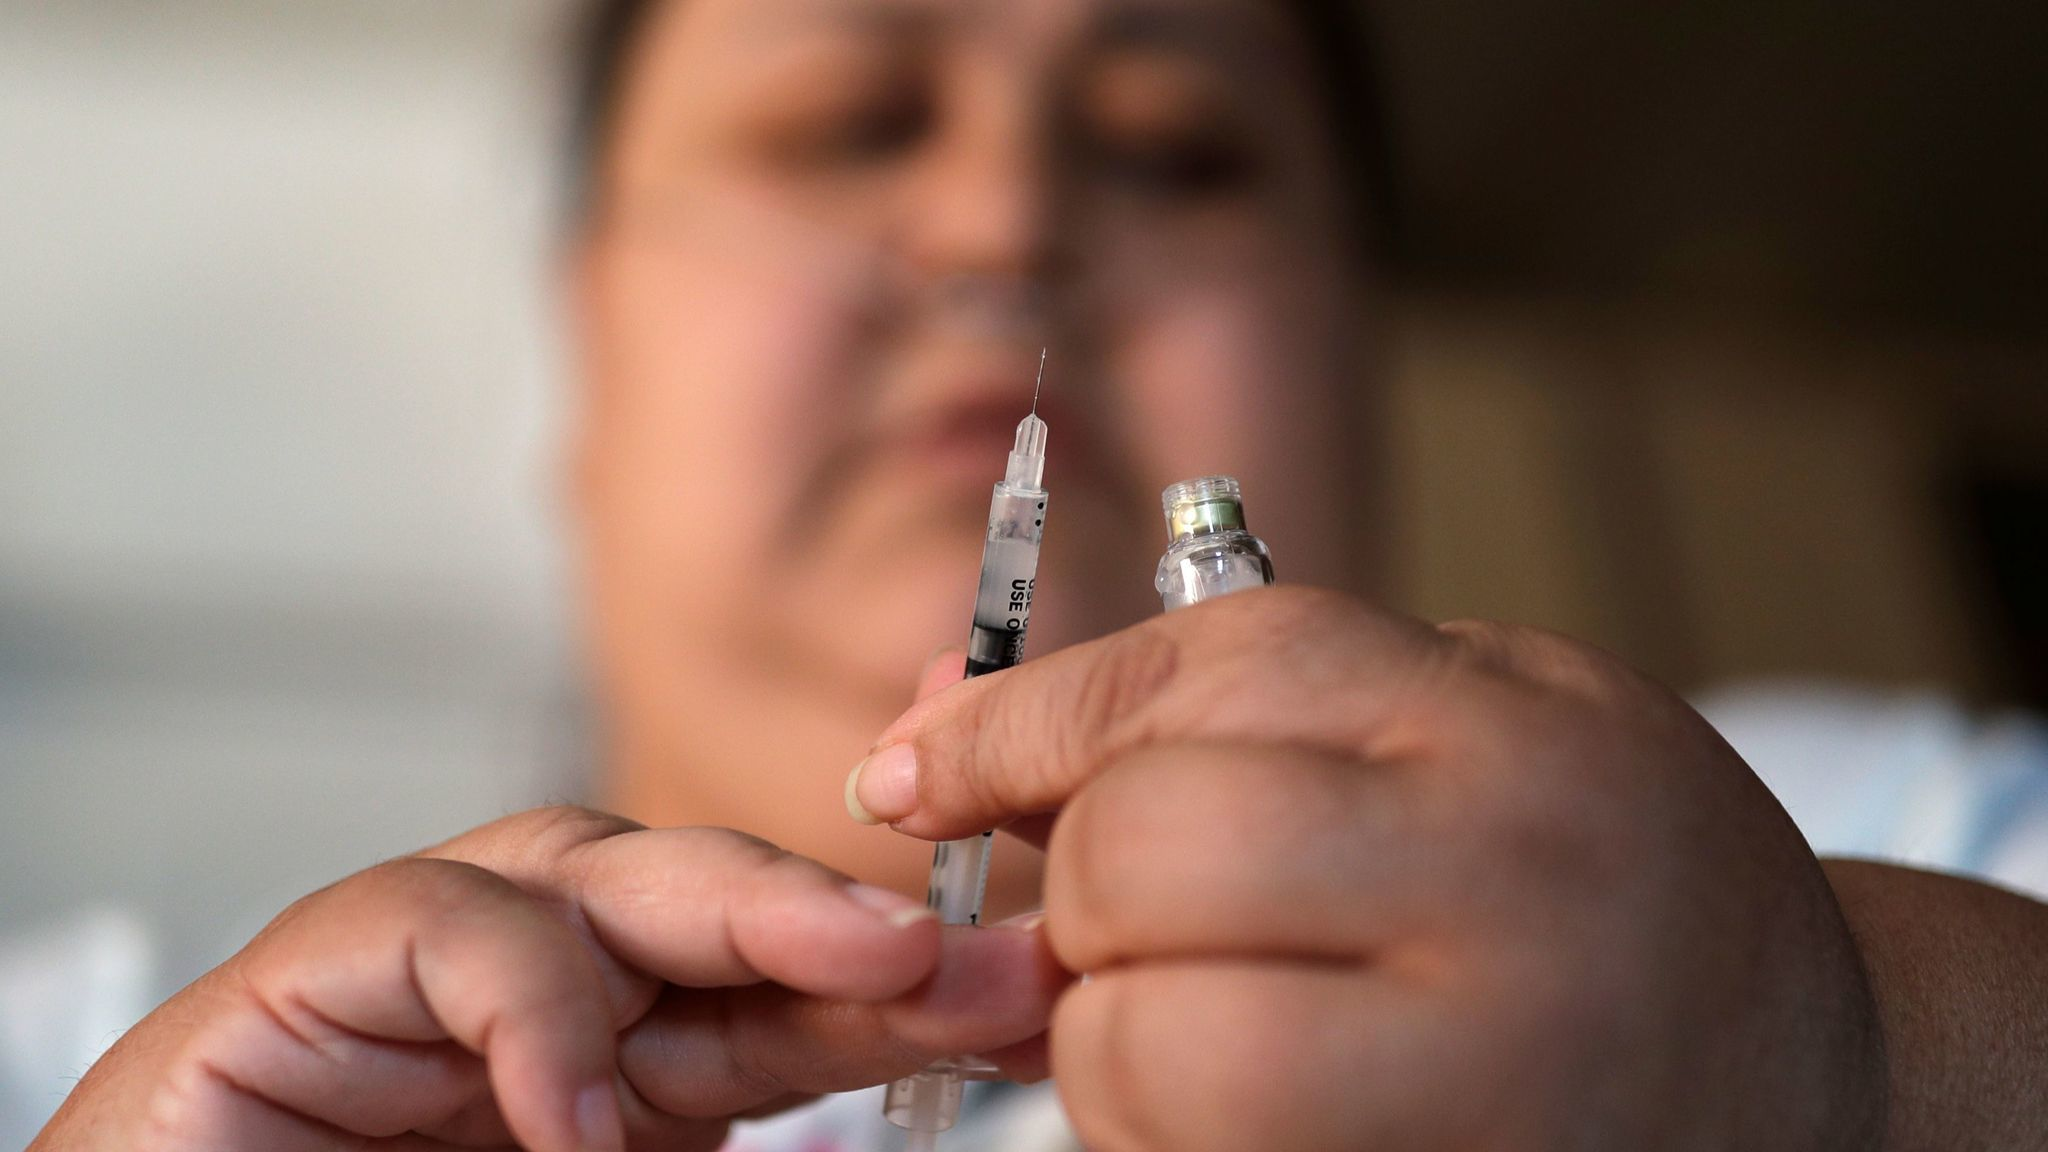 A woman with type 2 diabetes prepares to inject herself with insulin.